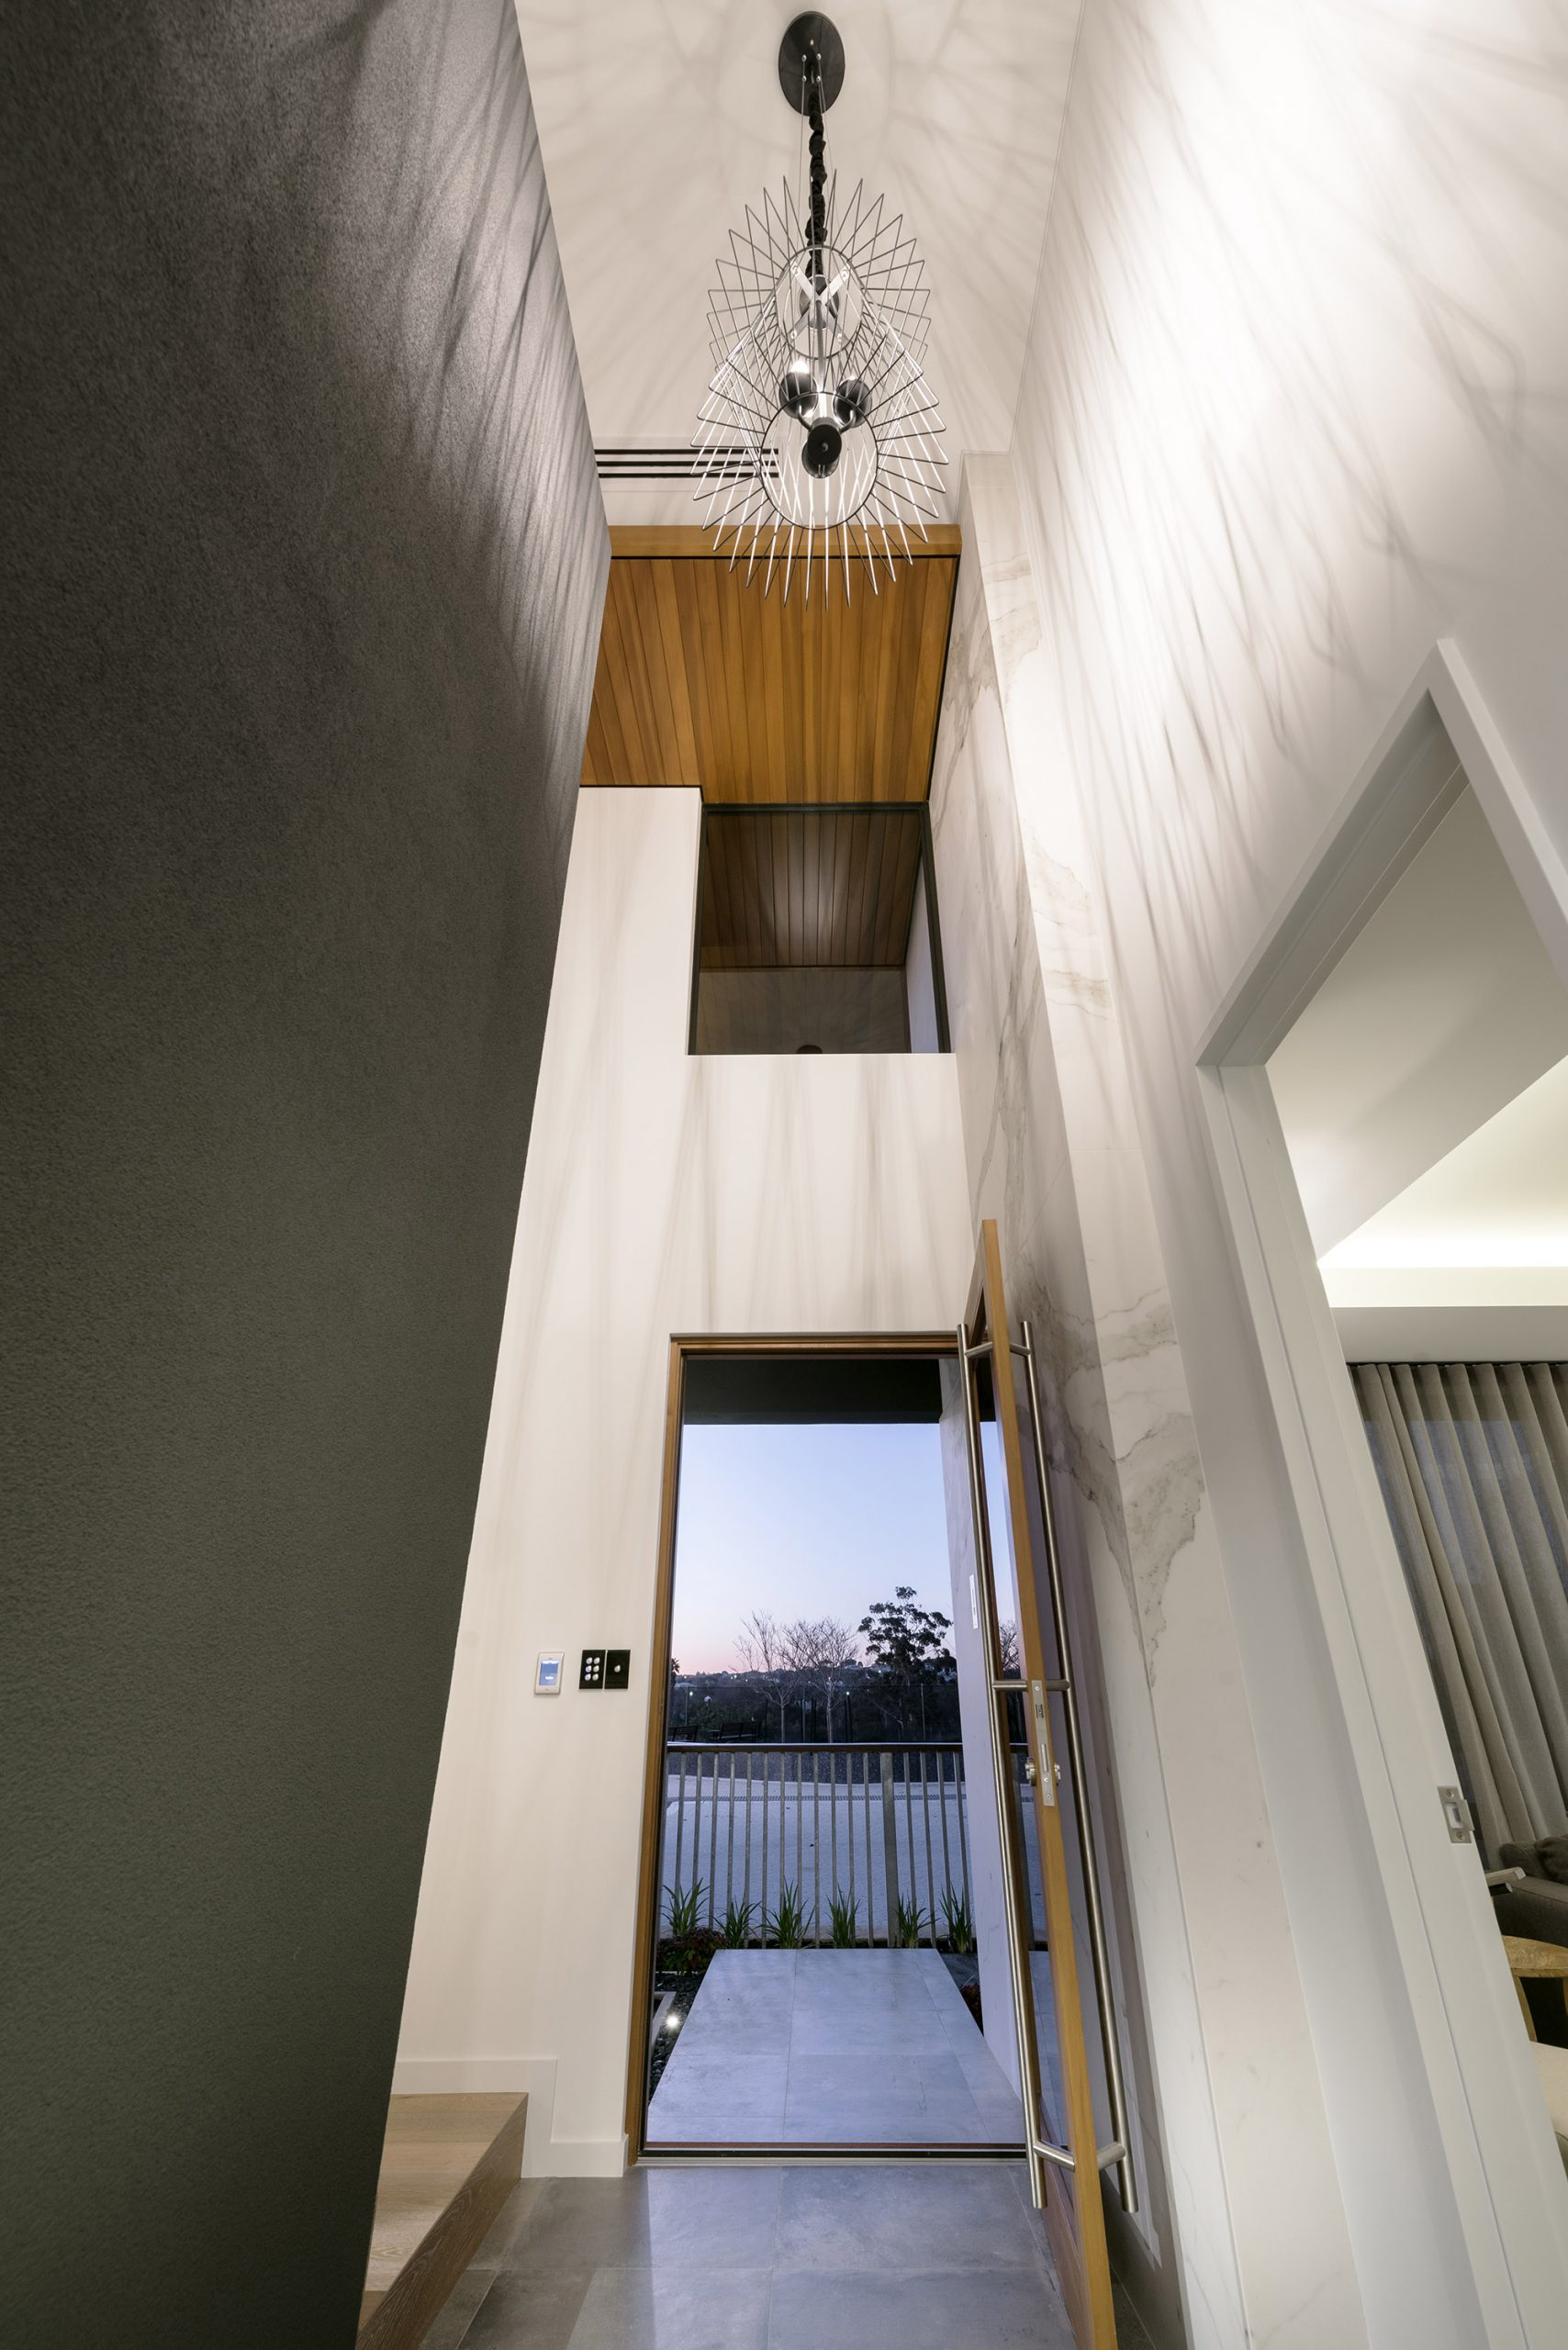 bravvo-porcelain-stone-wall-hallway-in-home-entrance